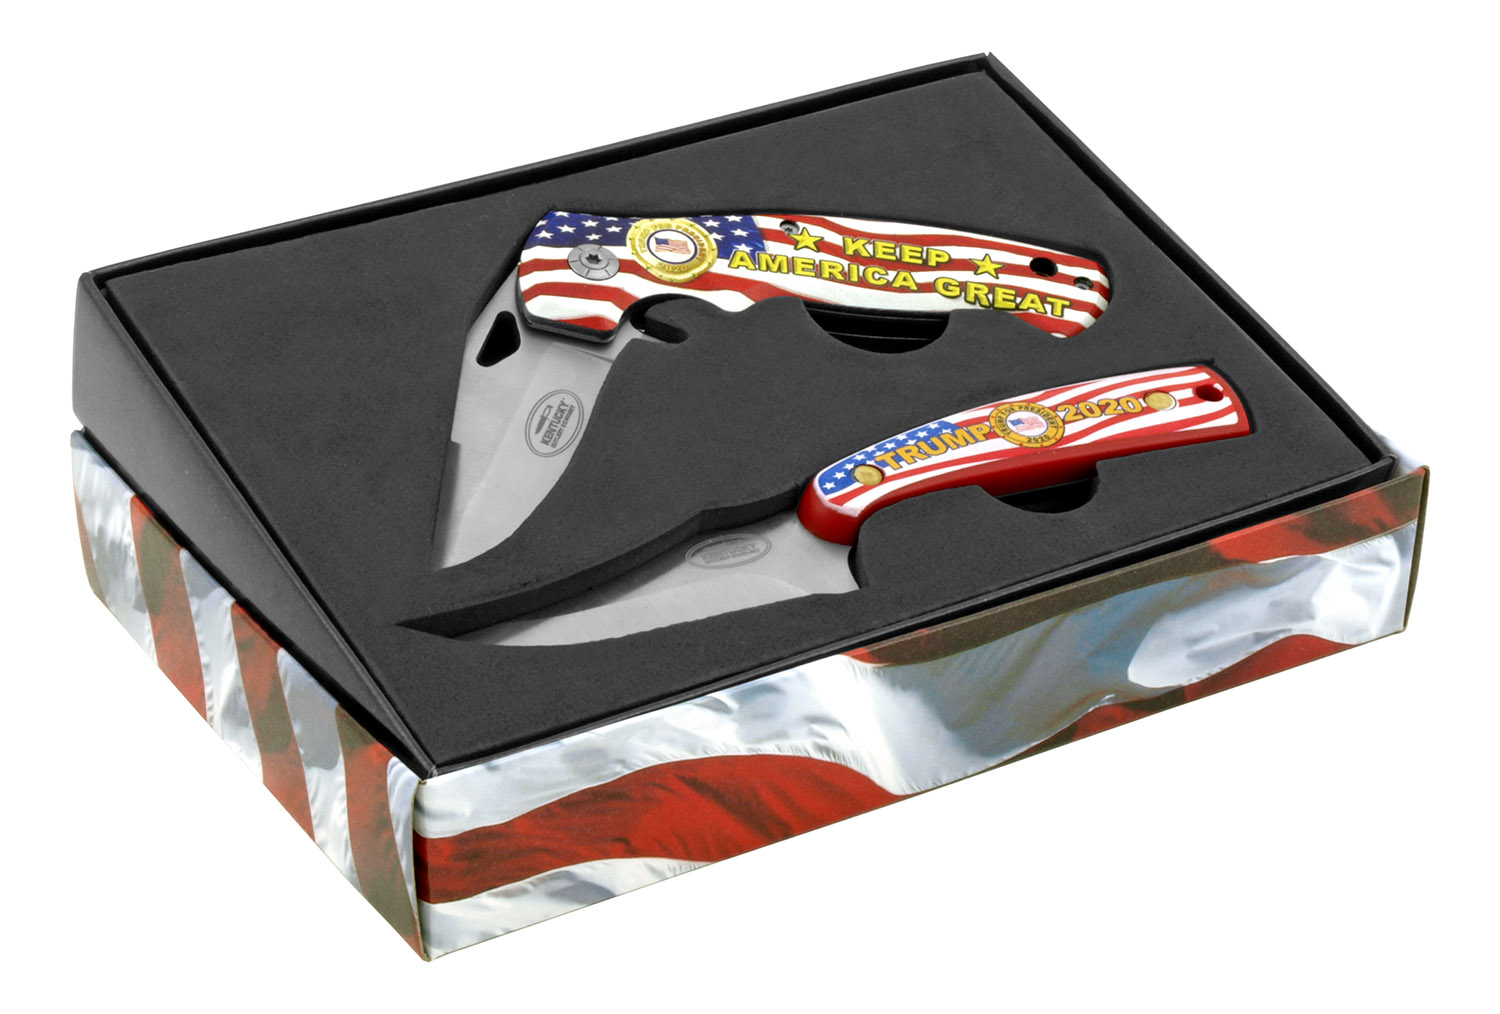 President Trump 2020 - 2 pc. Commemorative Folding Pocket Knife Set